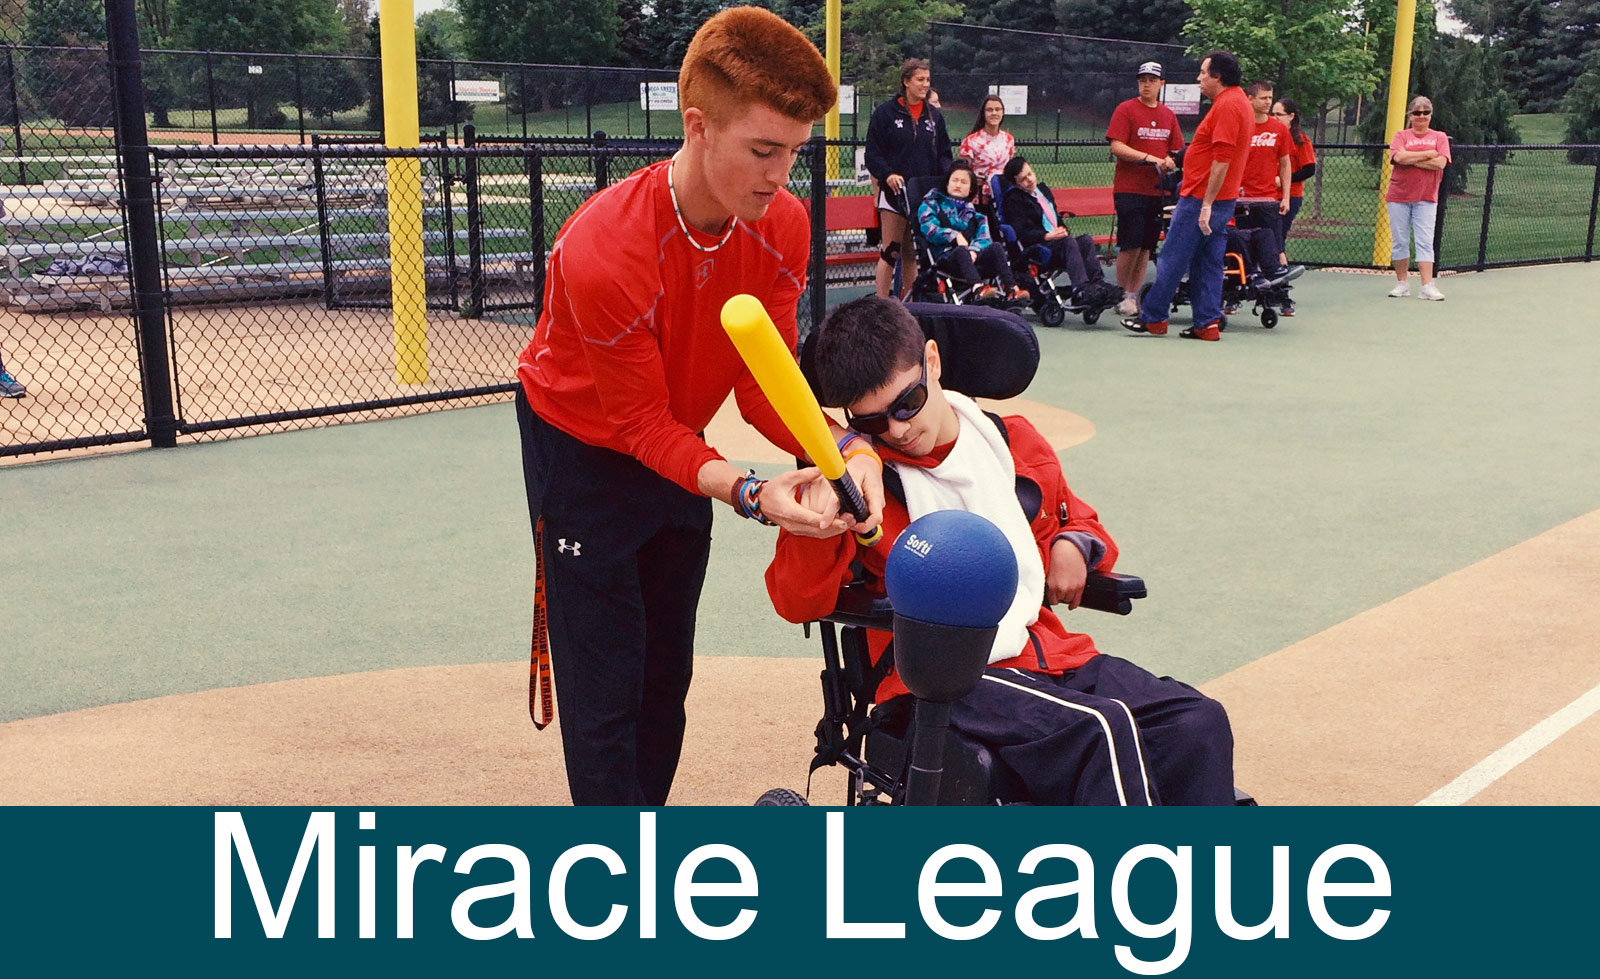 miracle league player